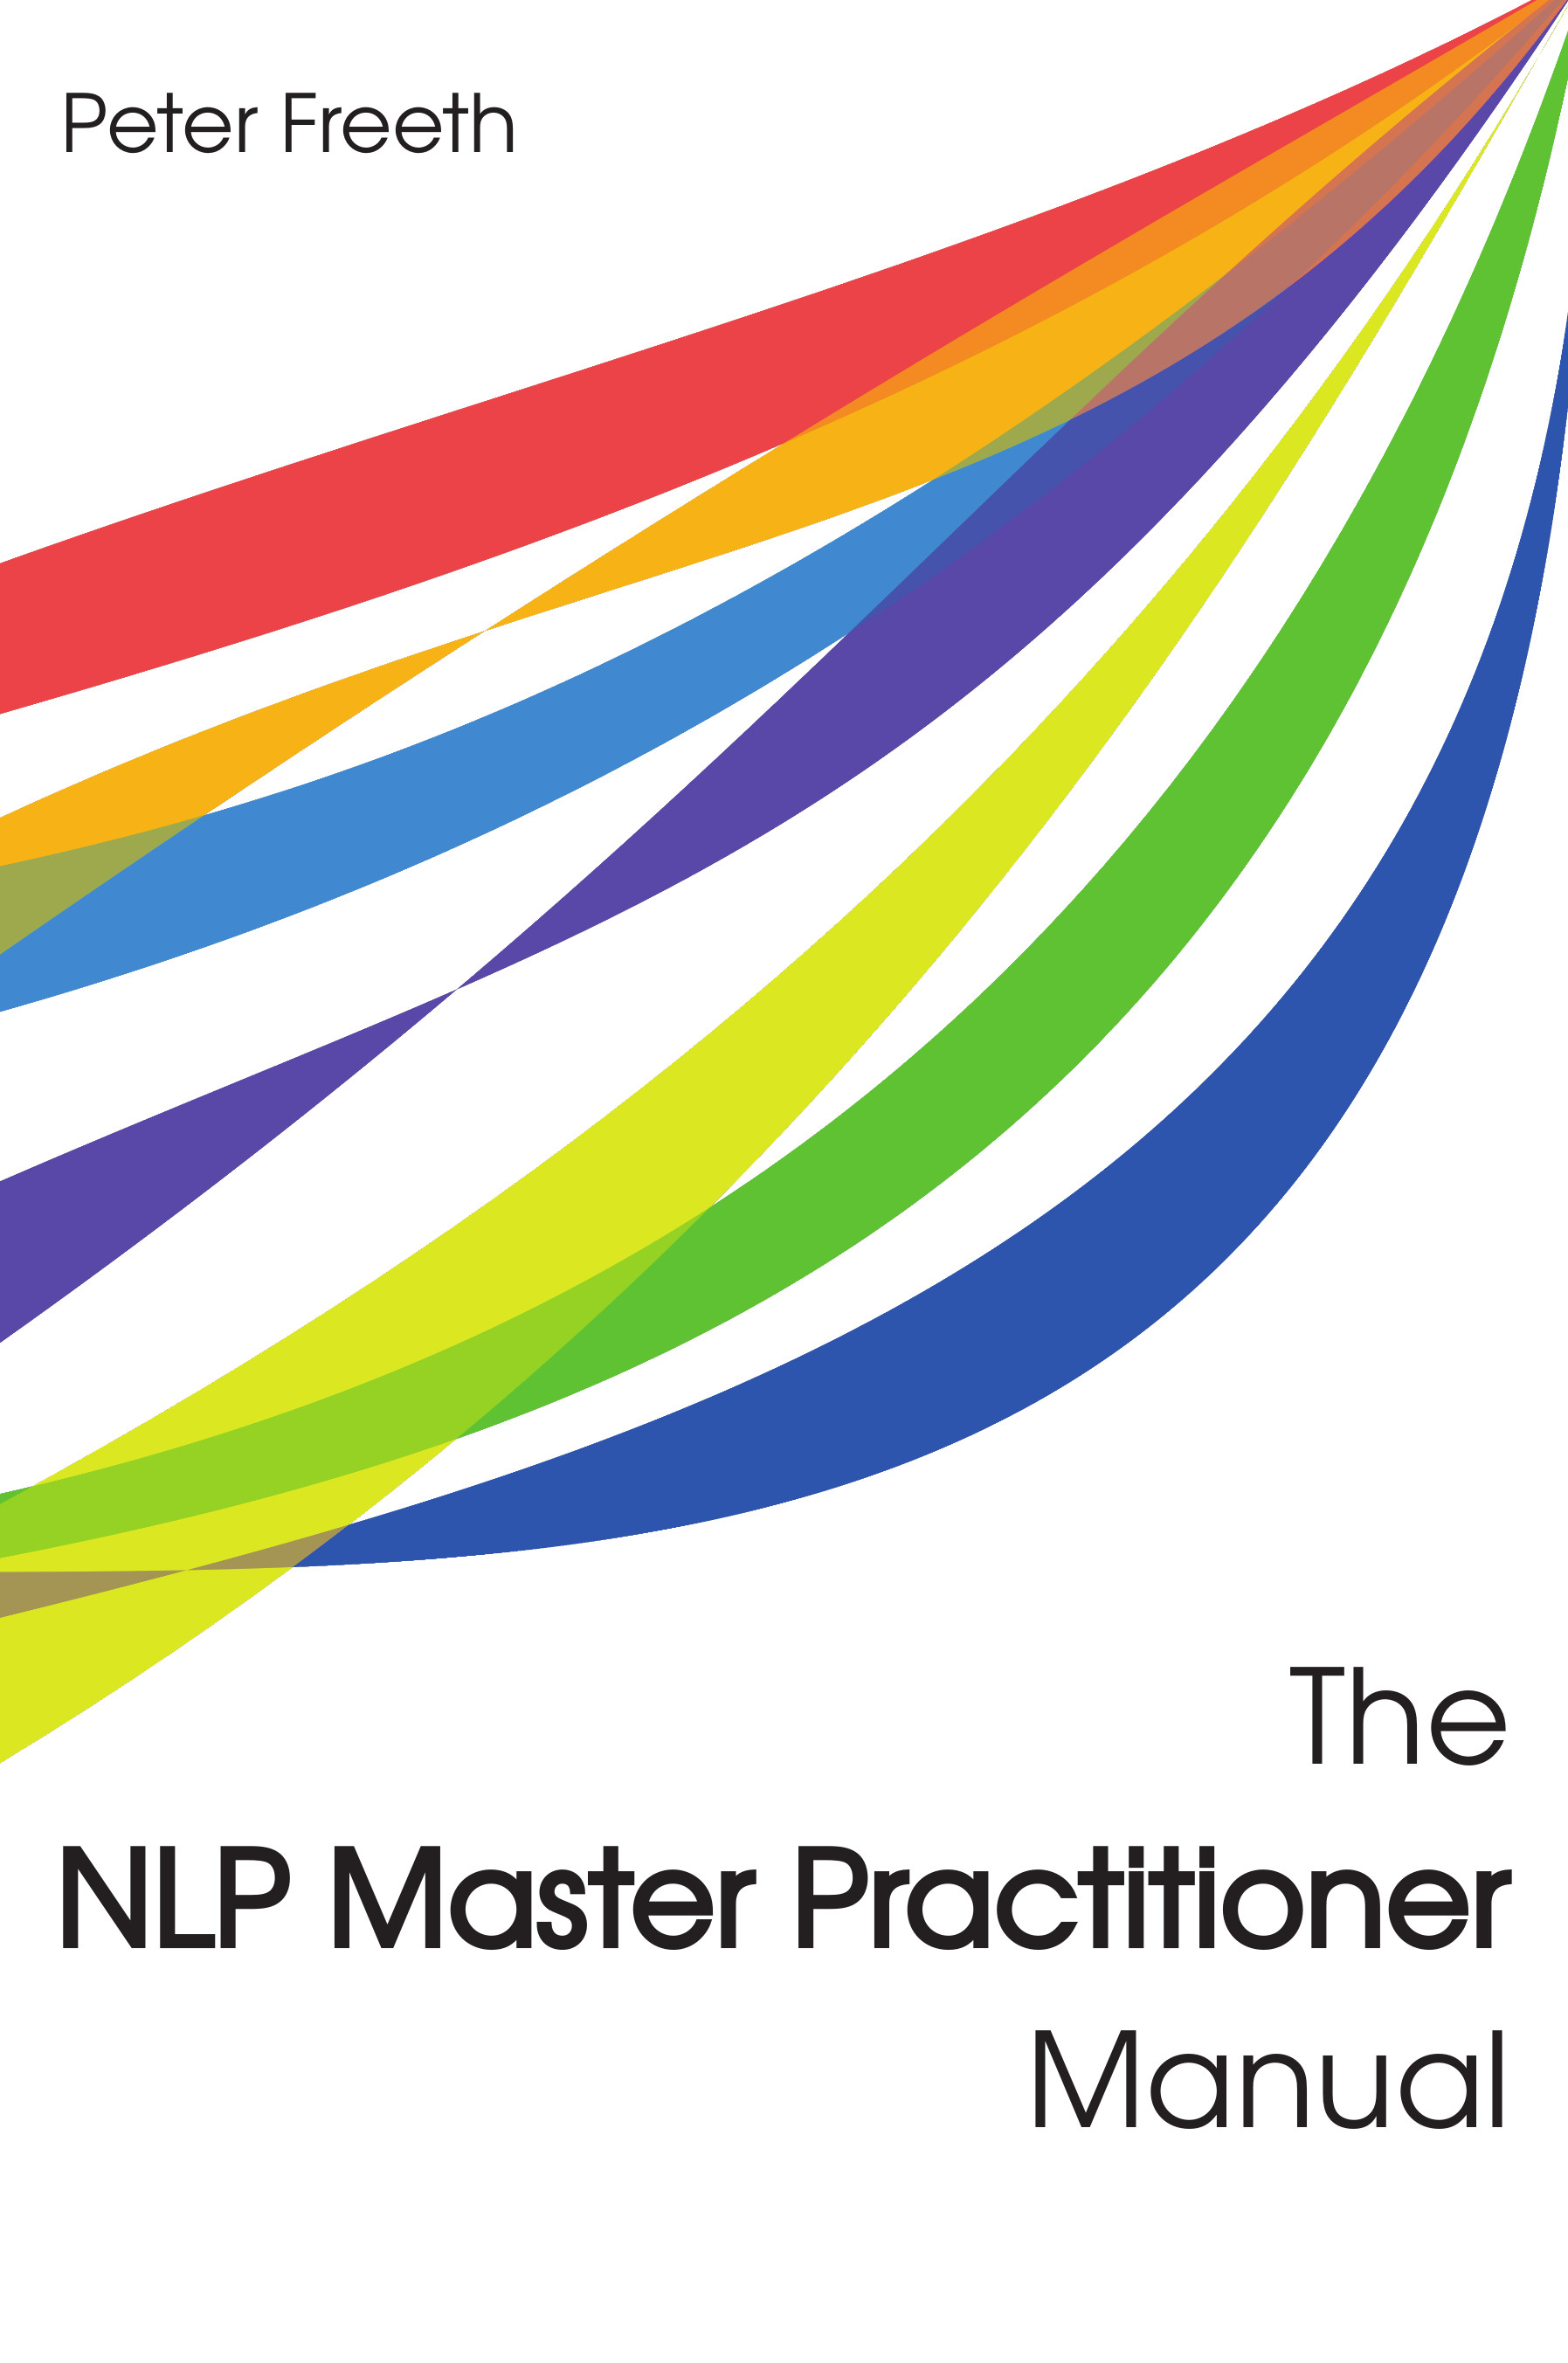 The NLP Master Practitioner Manual by Peter Freeth.  This is the definitive NLP Master Practitioner Manual, containing everything that you need to model talents and create custom techniques in any situation.